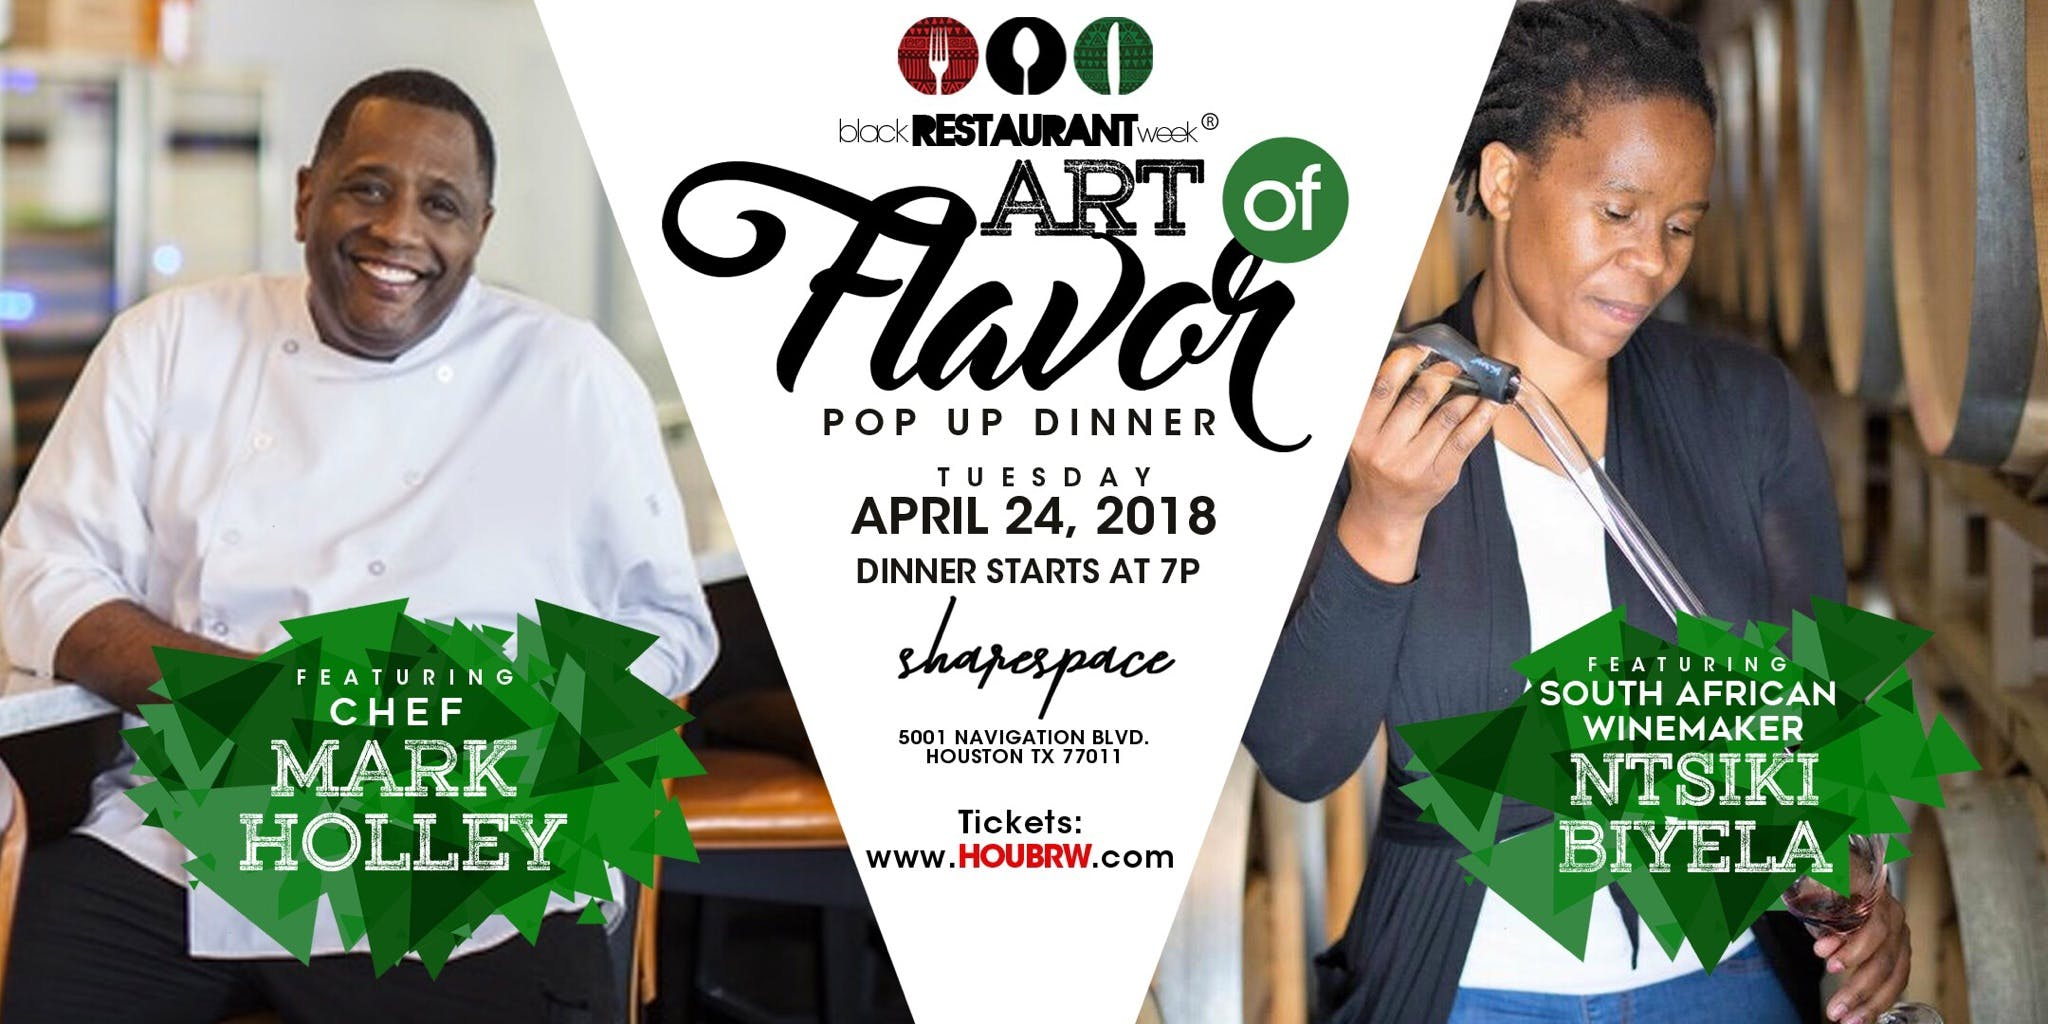 Art of Flavor Pop Up Dinner Featuring Chef Mark Holley